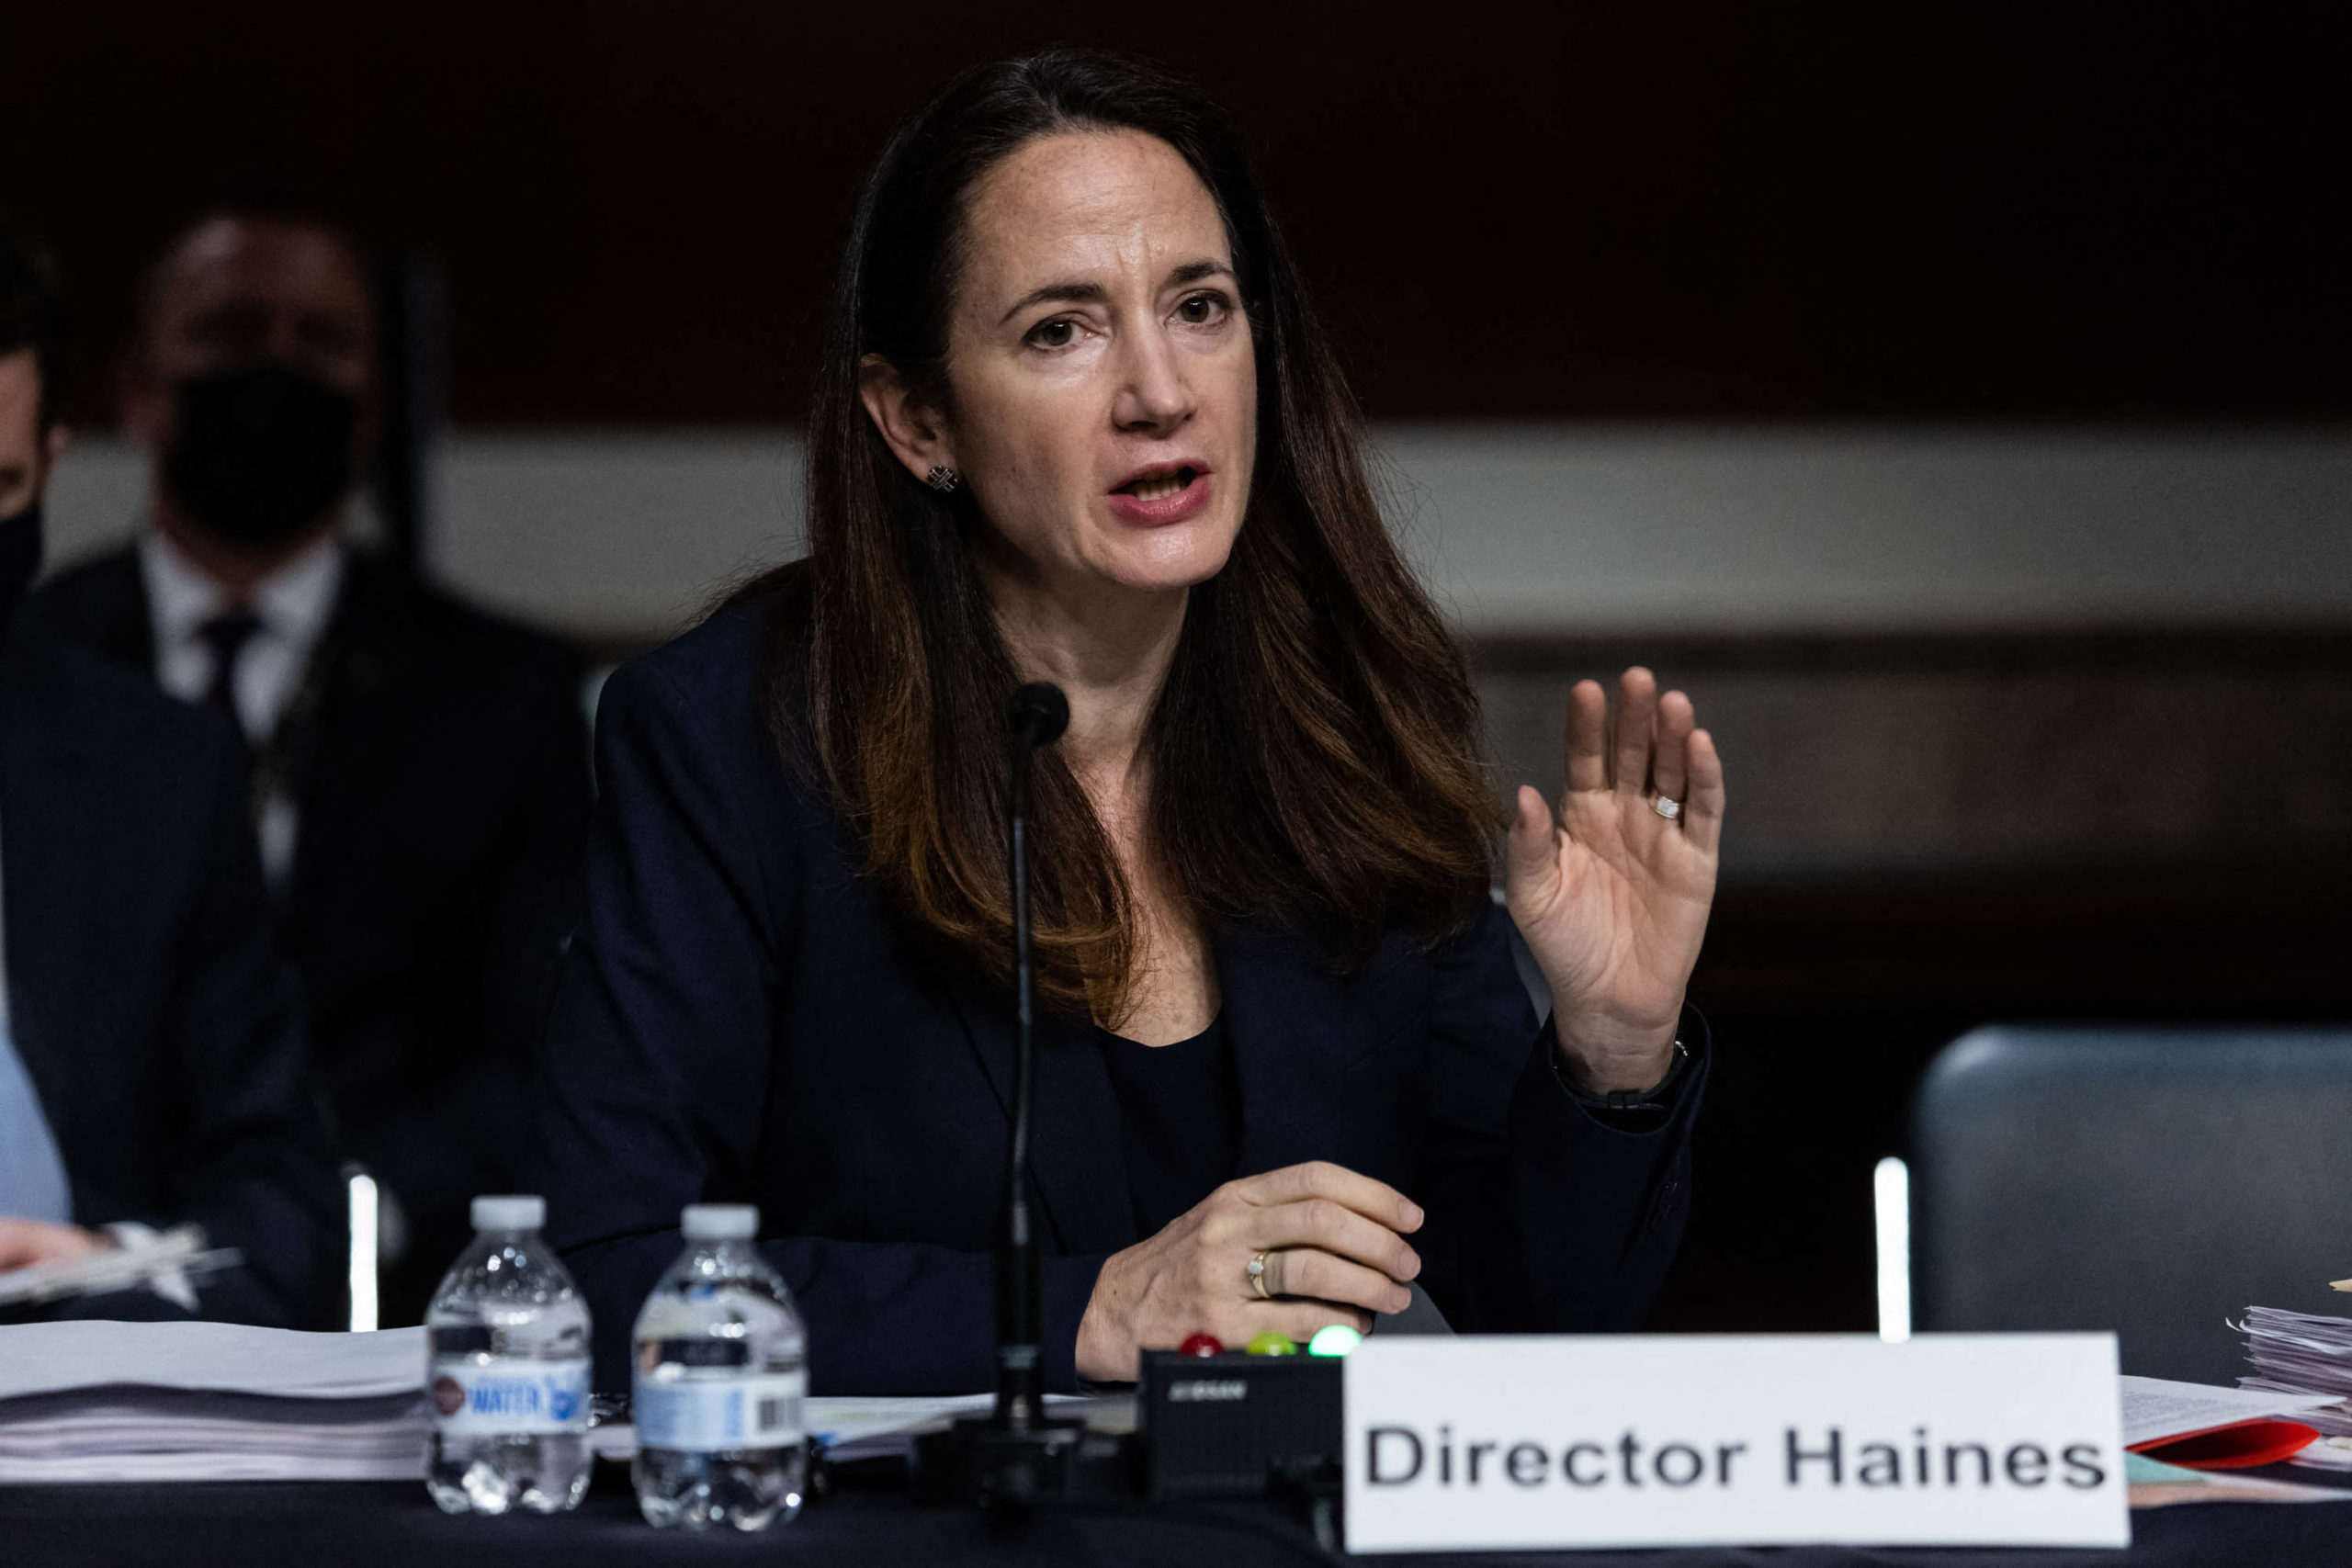 Director of National Intelligence Avril Haines testifies on April 29 before a Senate committee. (Graeme Jennings/Pool/AFP via Getty Images)